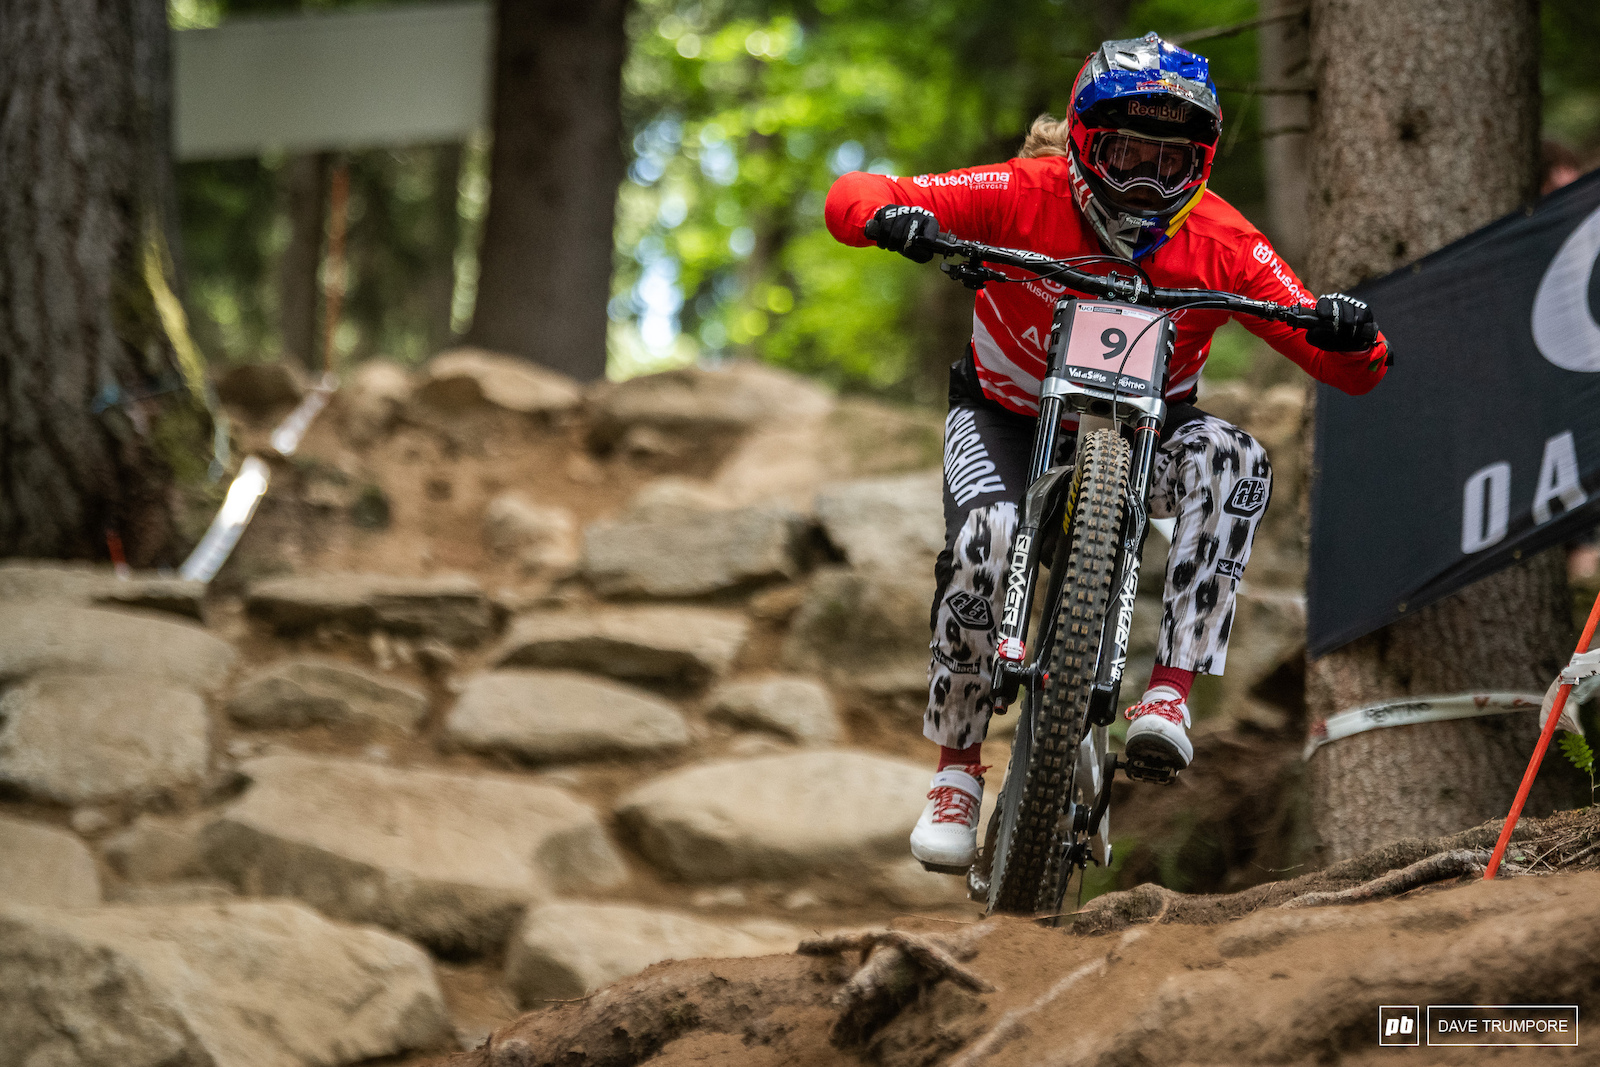 Vali Holl on top once again in qualifying. But can she keep it together when it counts in the final Grabbing the rainbow stripes sure would be a great way to take her first elite win